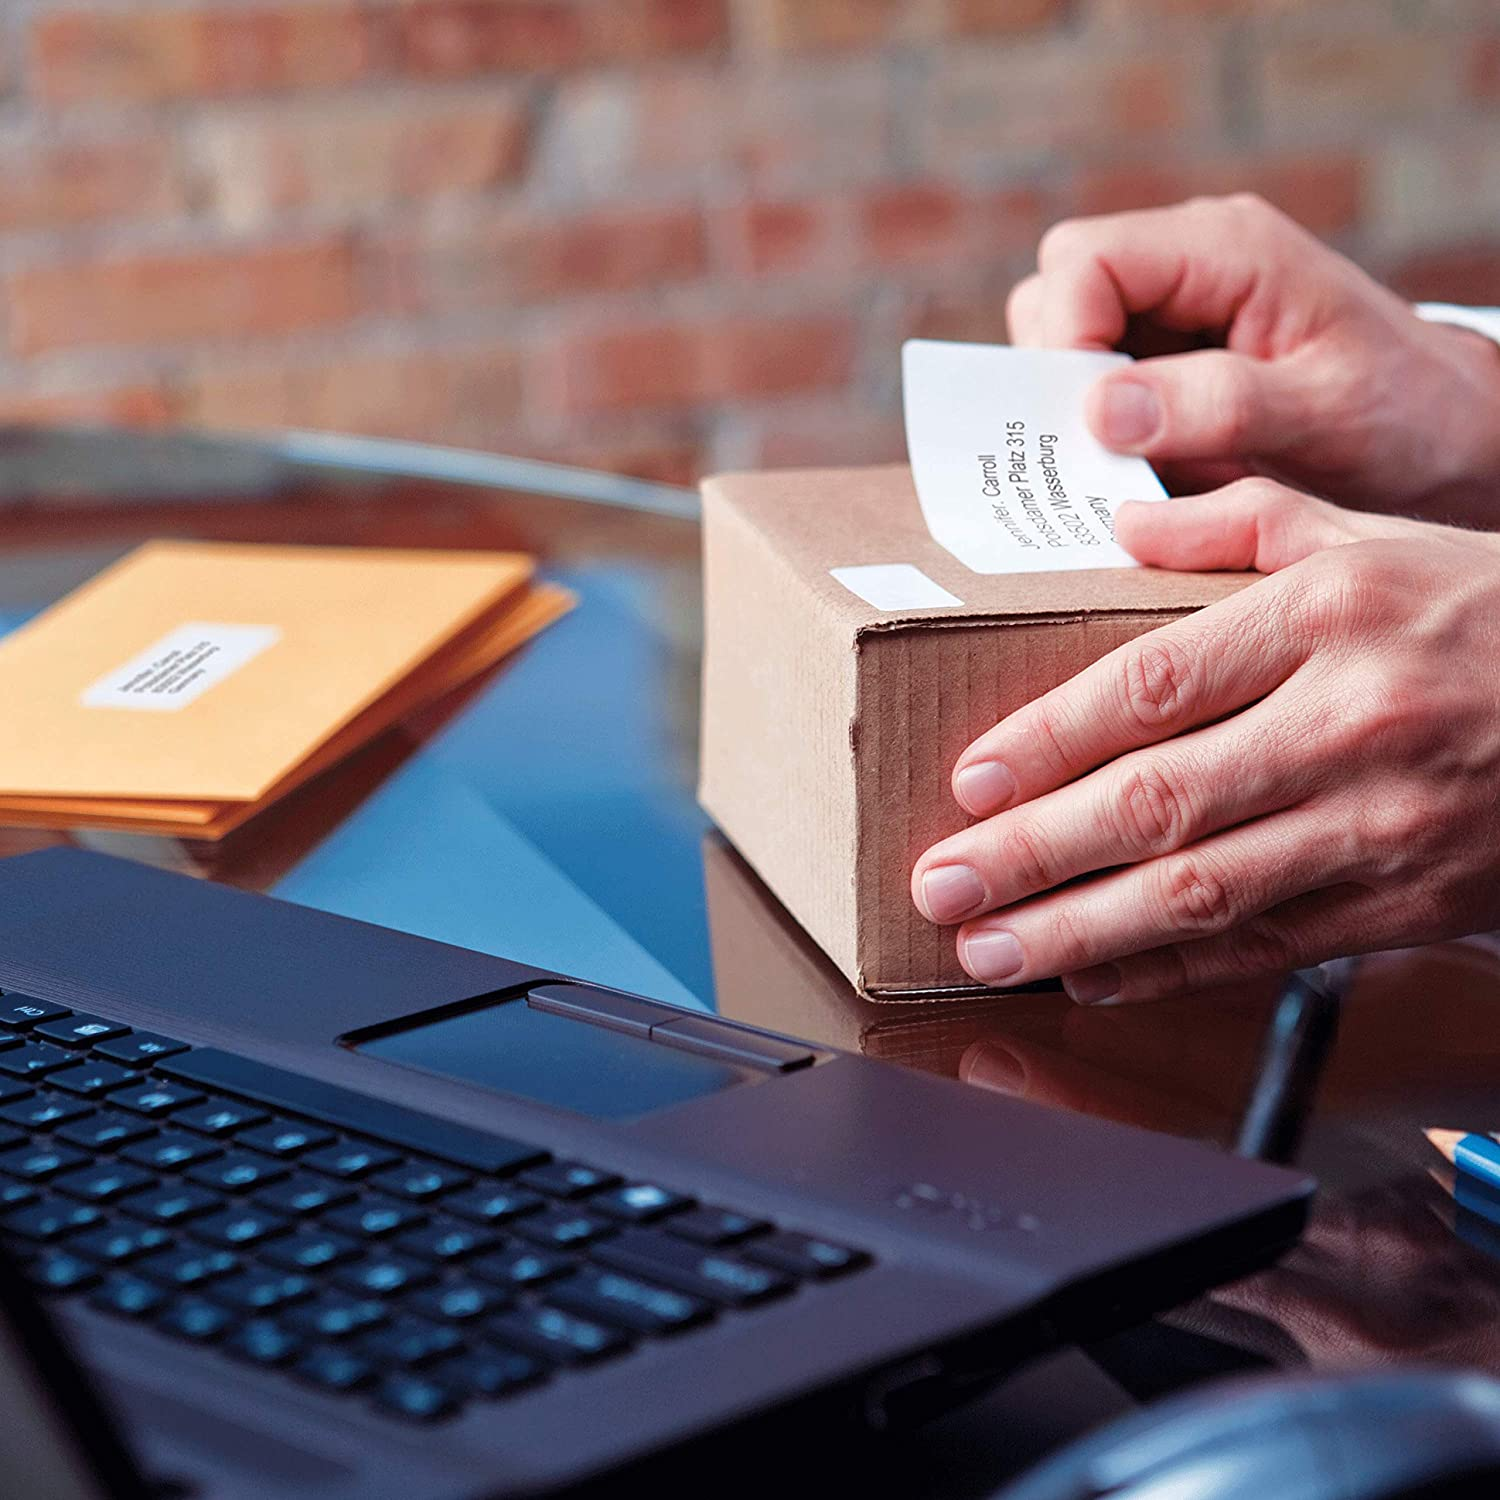 Placing freshly printed label on a shipping box in an office